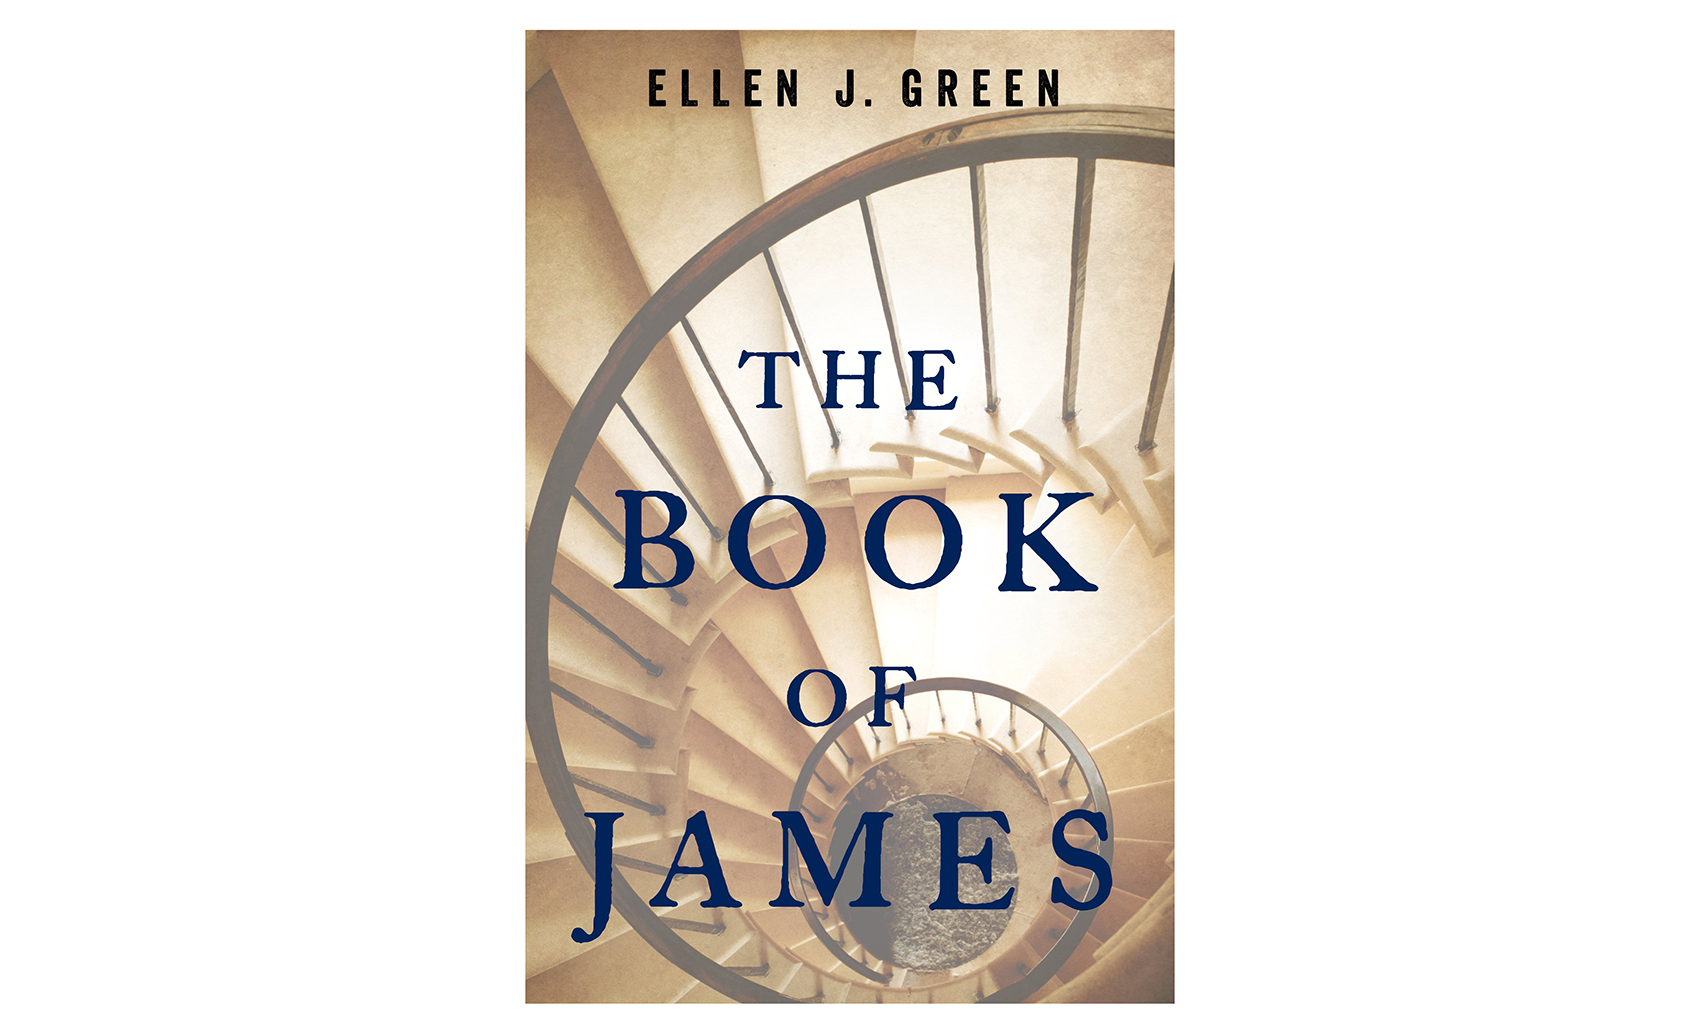 The Book of James, by Ellen J. Green